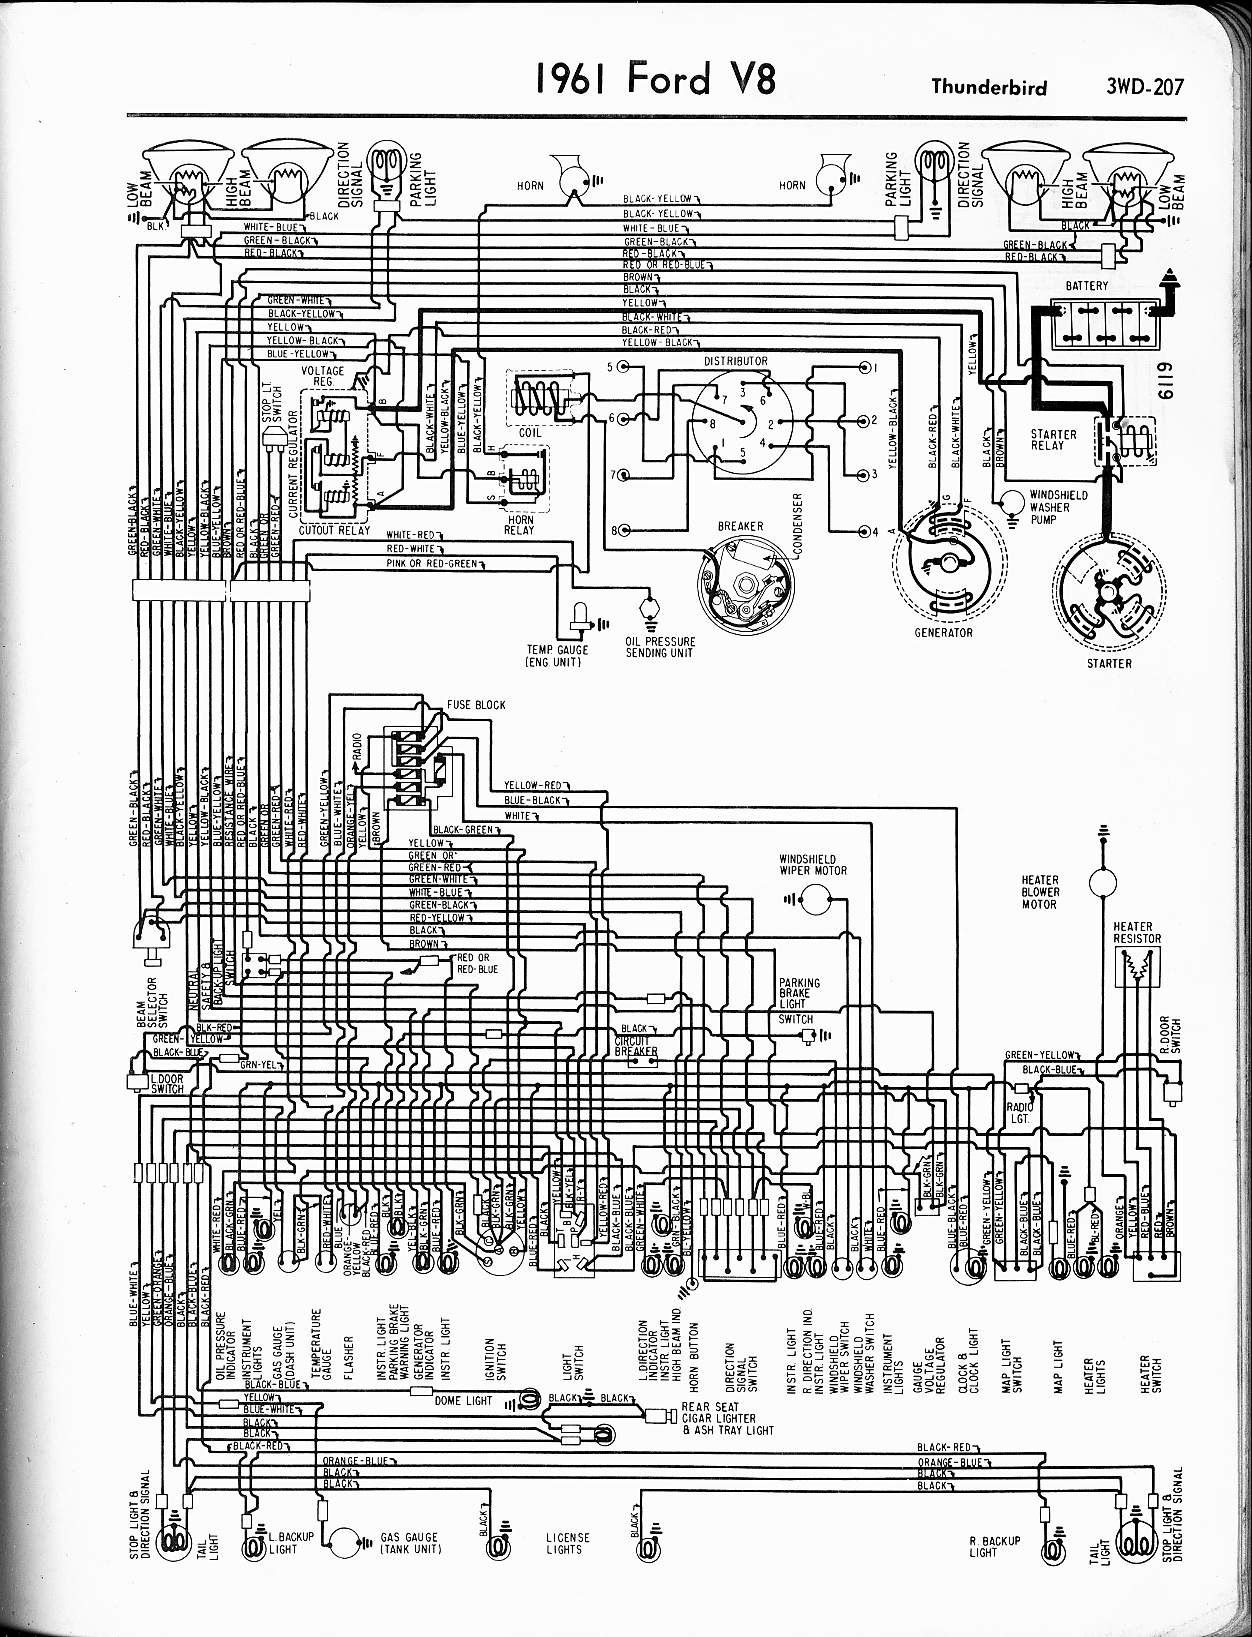 MWire5765 207 57 65 ford wiring diagrams ford wiring harness diagrams at readyjetset.co